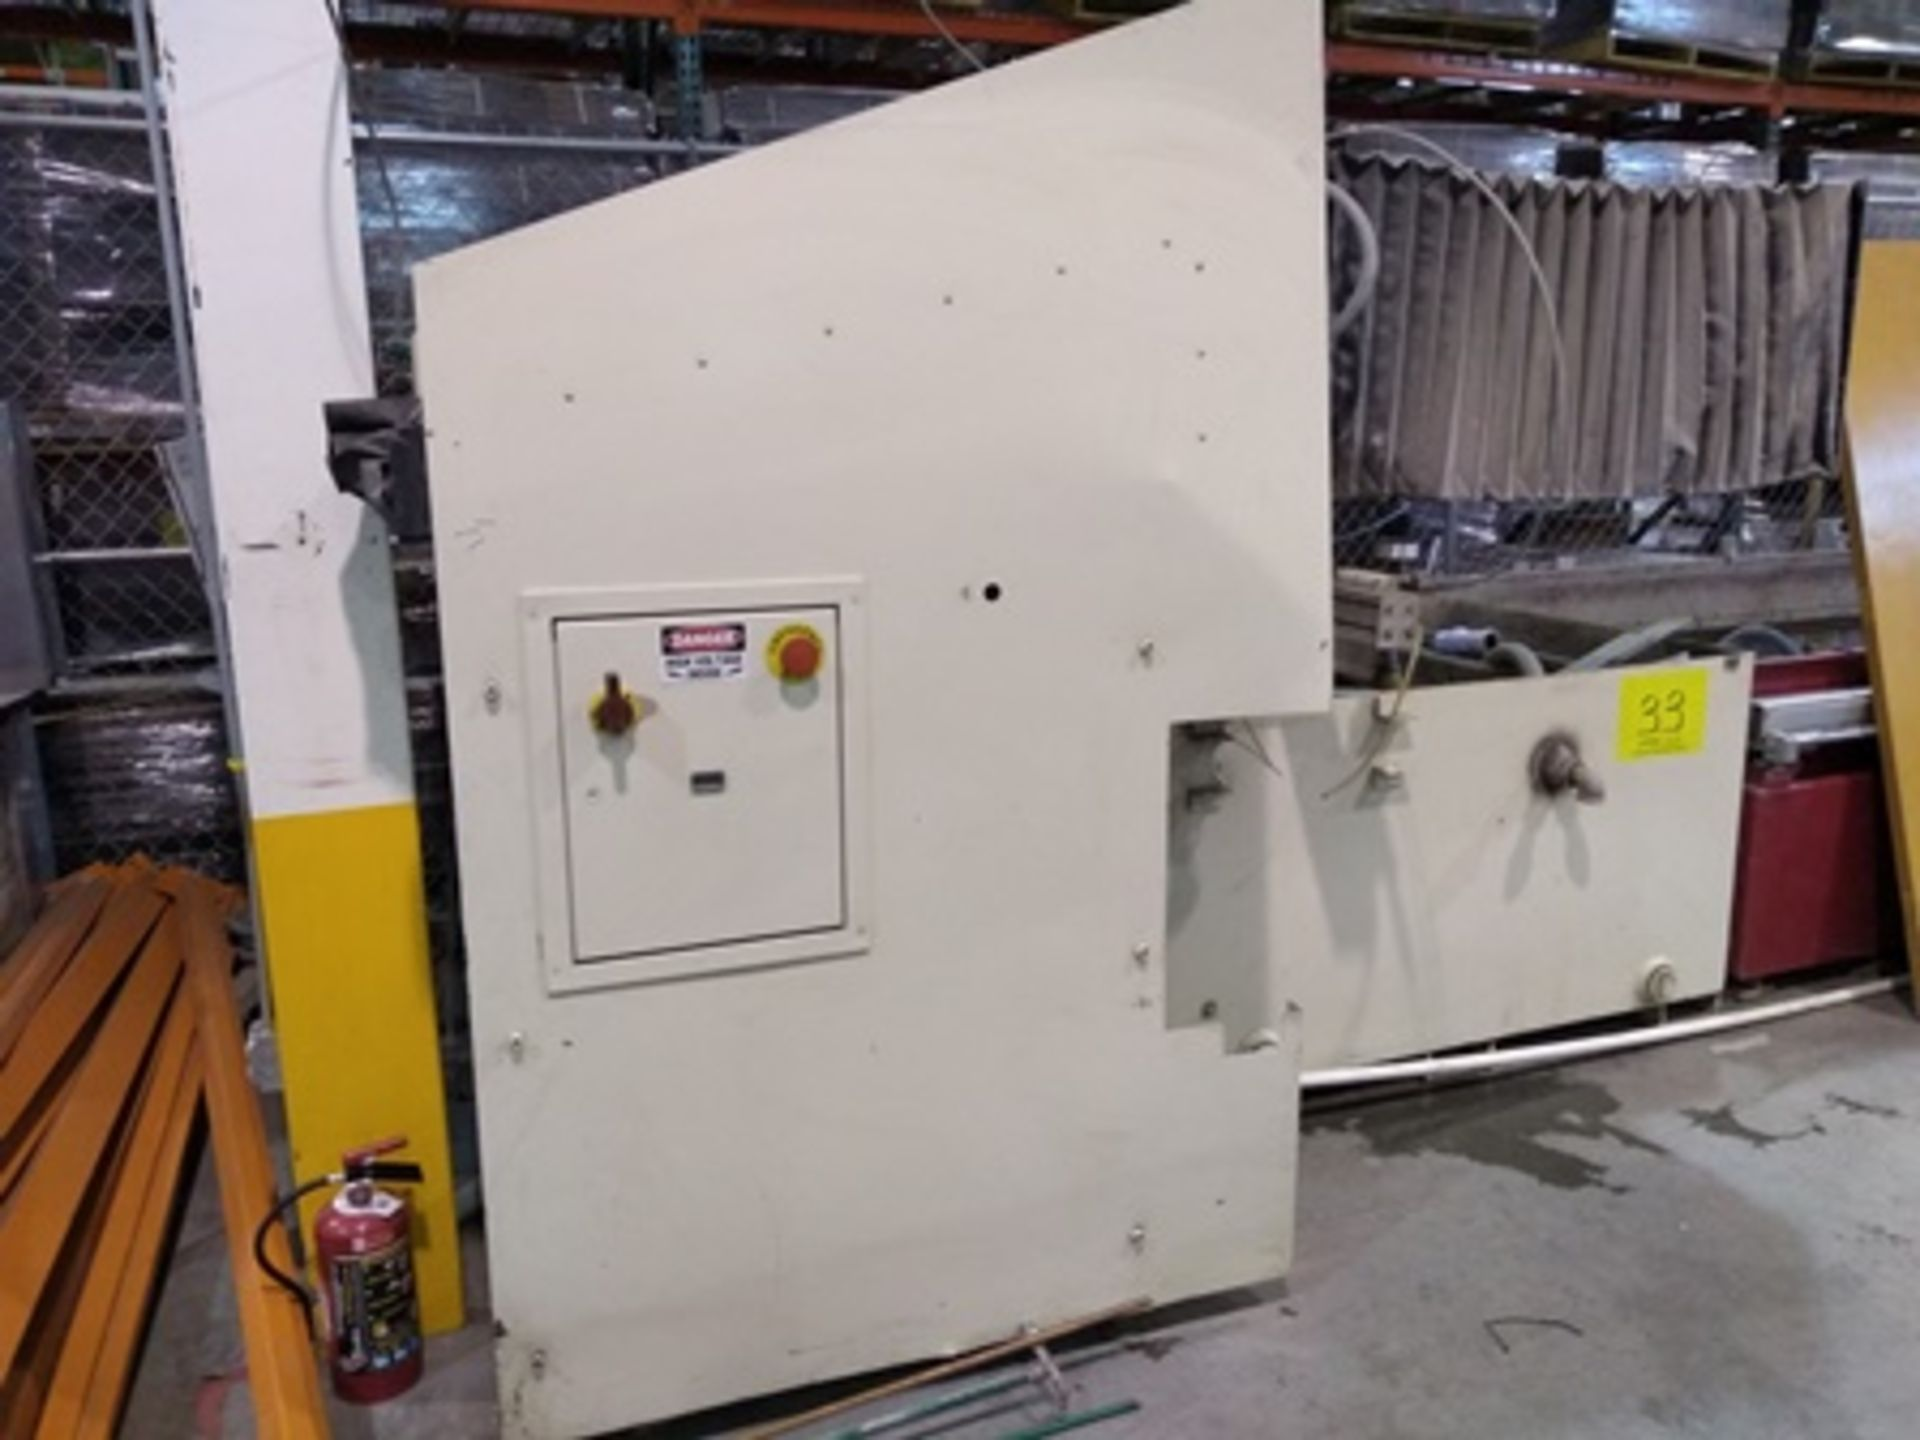 Lot 33 - Flow IFB abrasive waterjet cutting system with 2 heads , 5.5x6.8x3.2 ft tub.